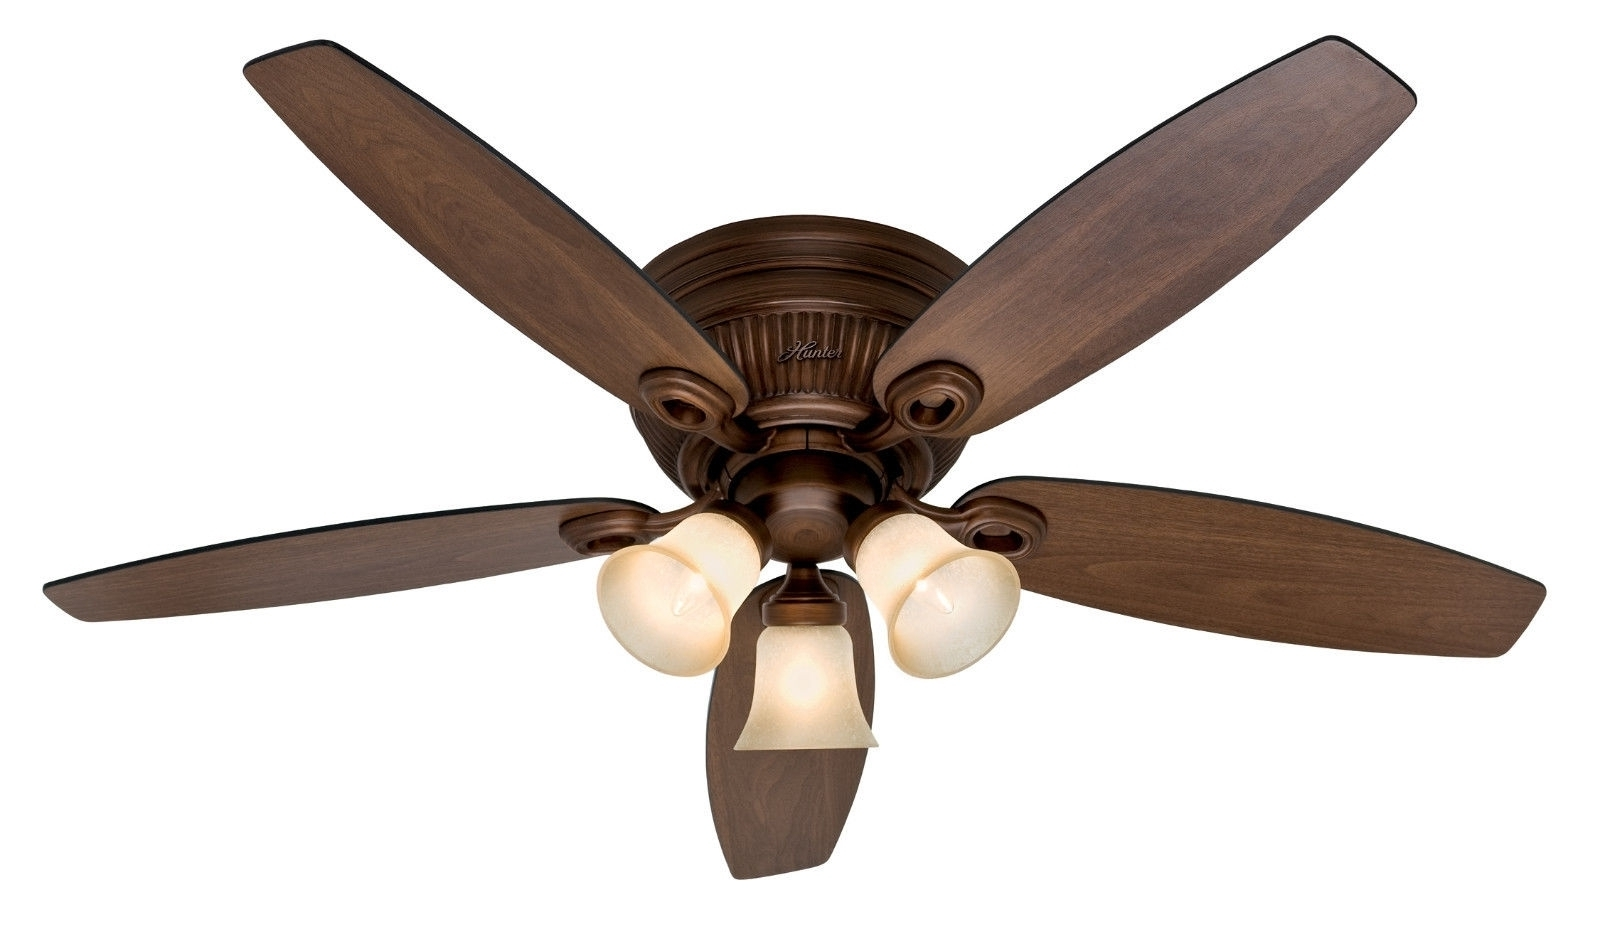 Victorian Style Outdoor Ceiling Fans Throughout Well Known Style Bedroom Ceiling Fan — Bedroom Design Interior : Bedroom Design (View 20 of 20)